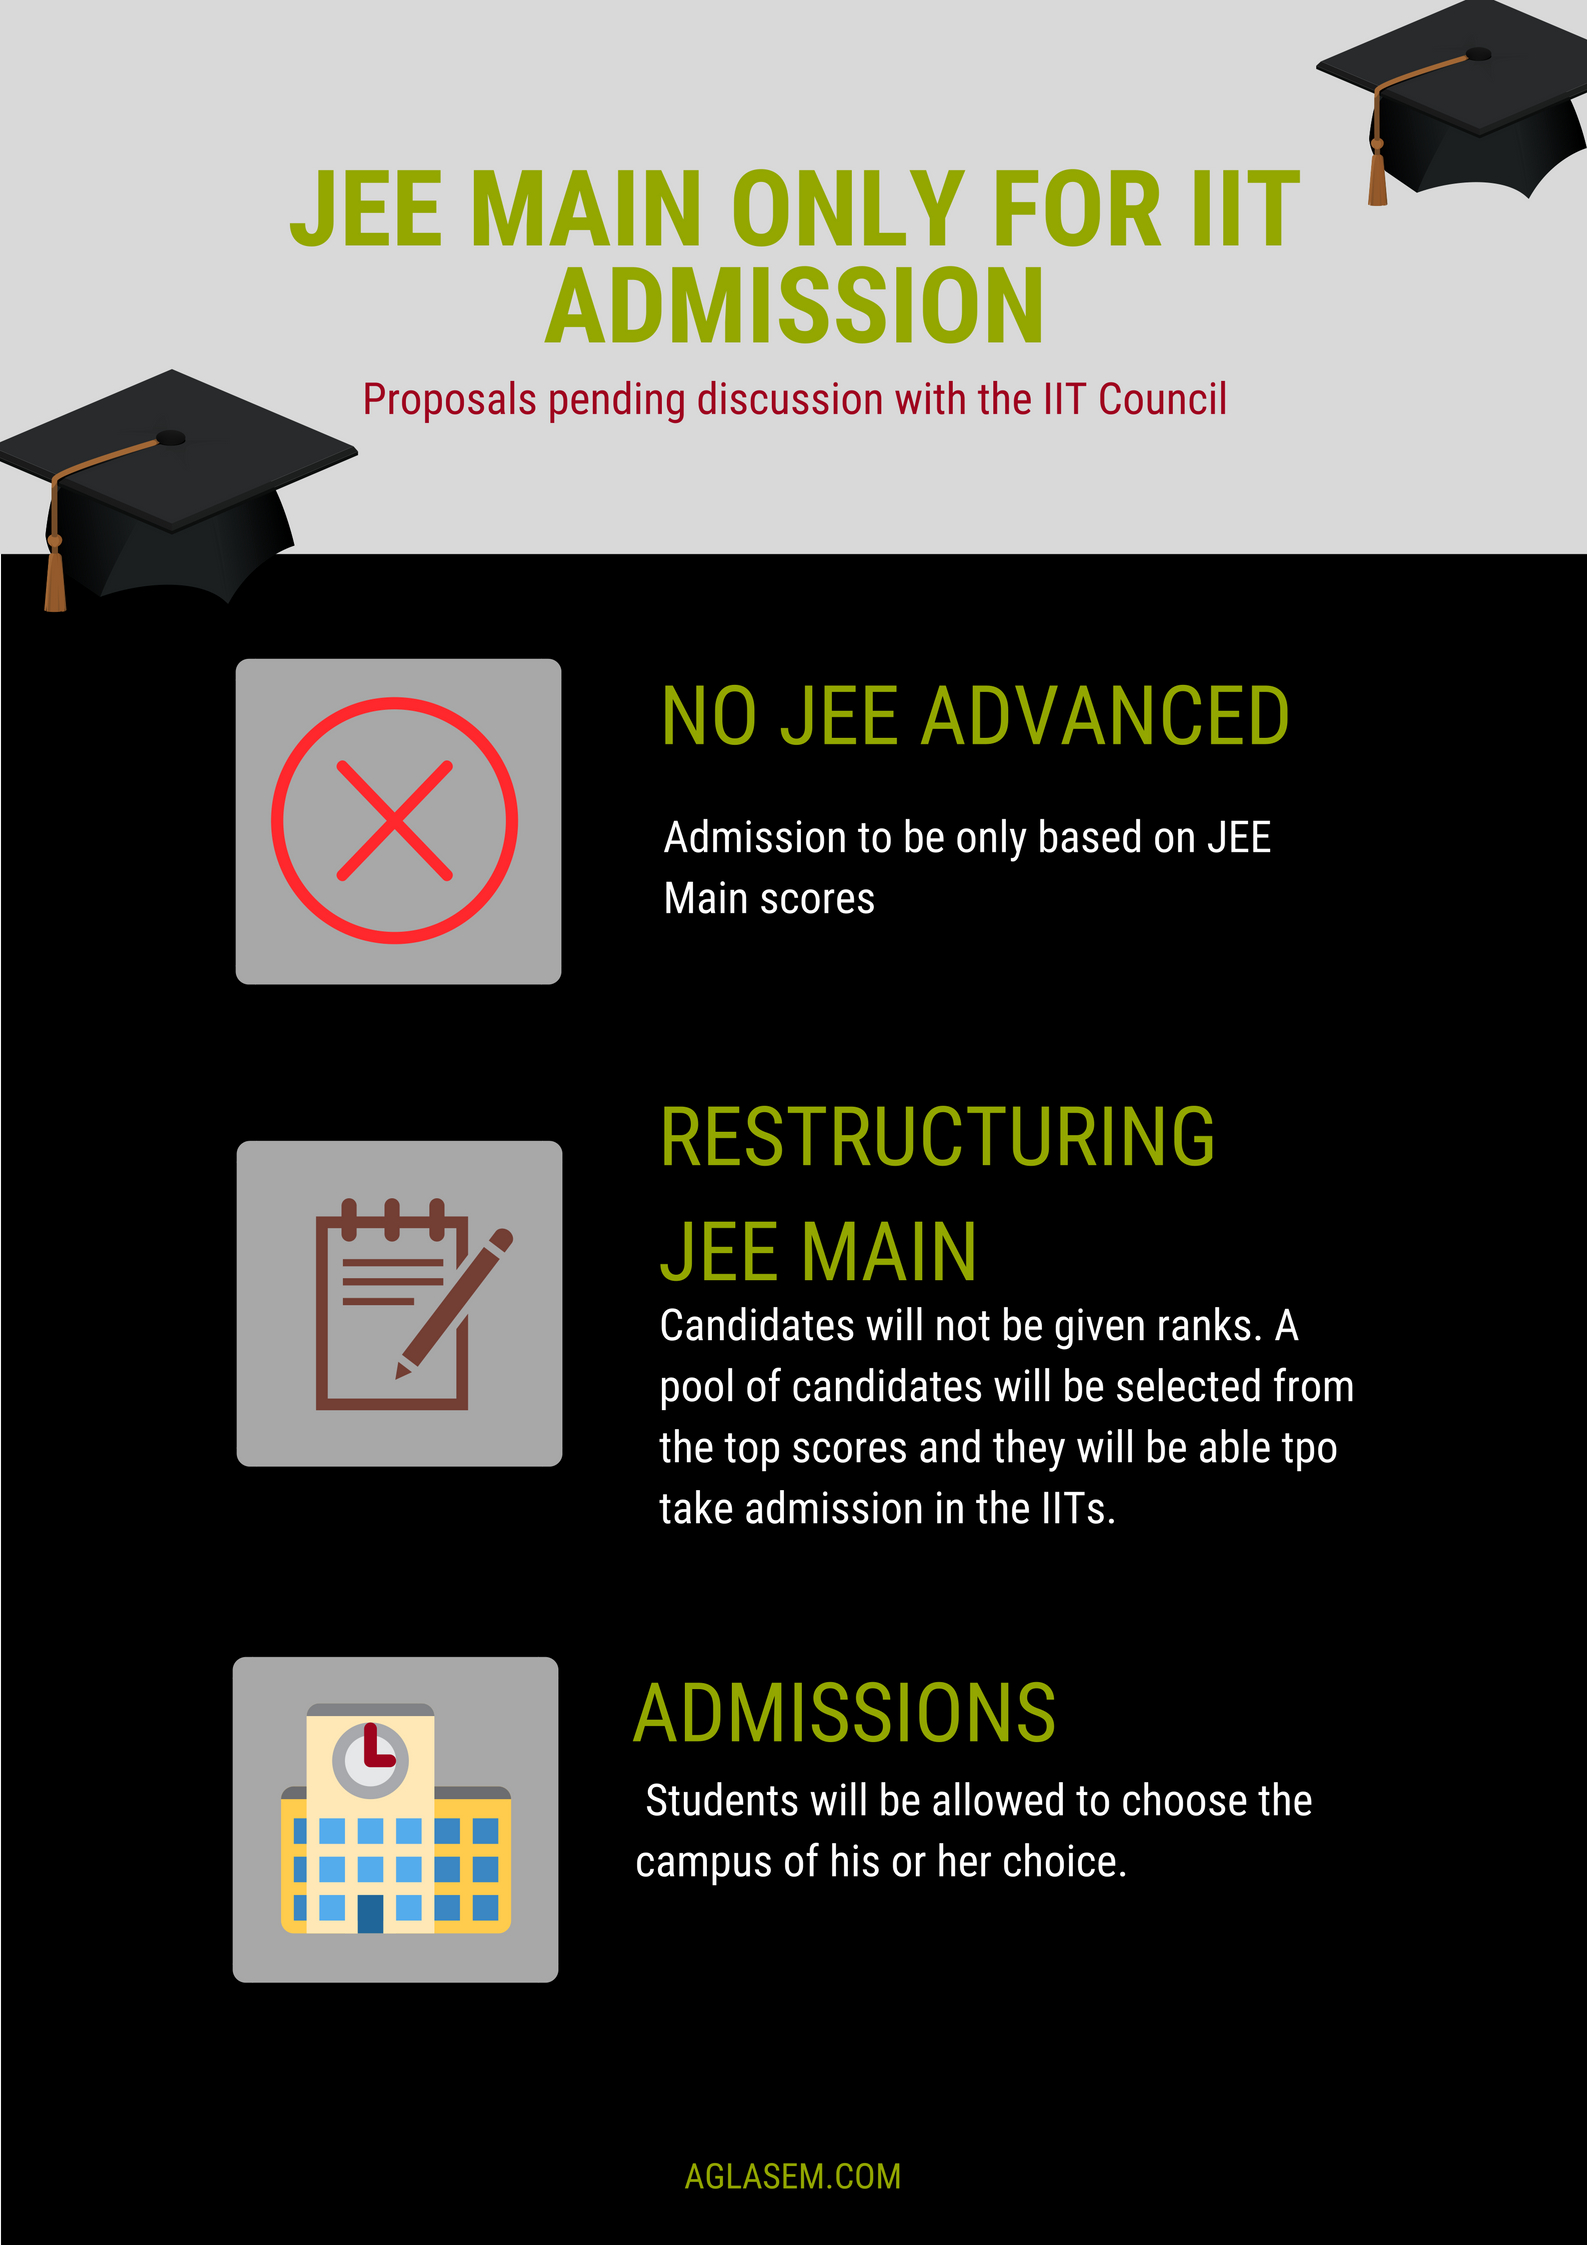 JEE Main Only For IIT Admissions And No More JEE Advanced - Decision On August 21